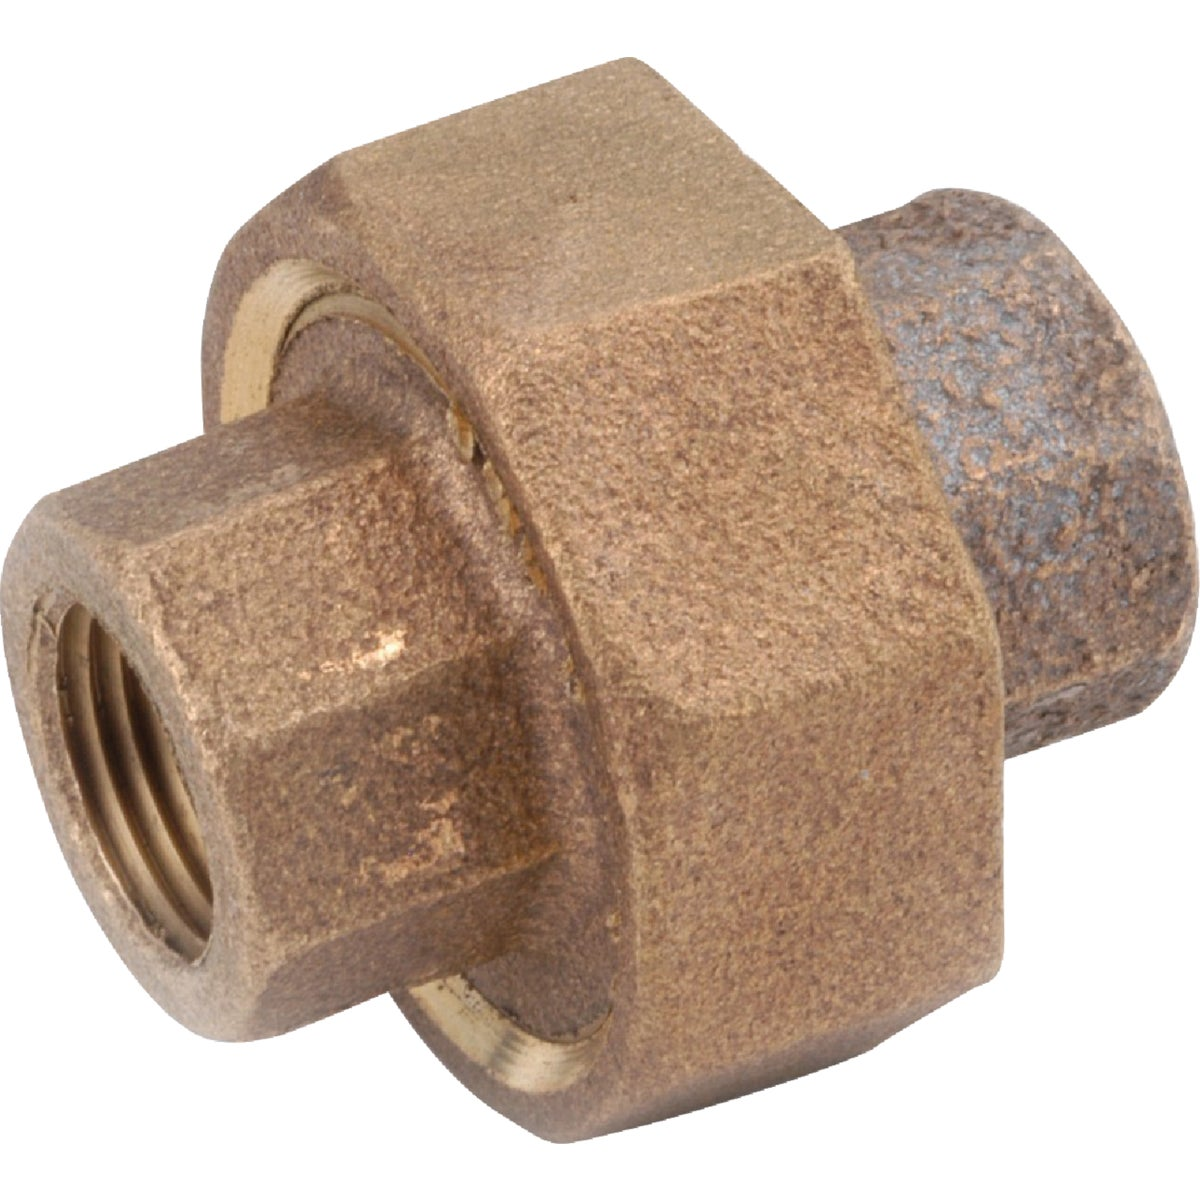 "1/4"" BRASS UNION - 738104-04 by Anderson Metals Corp"